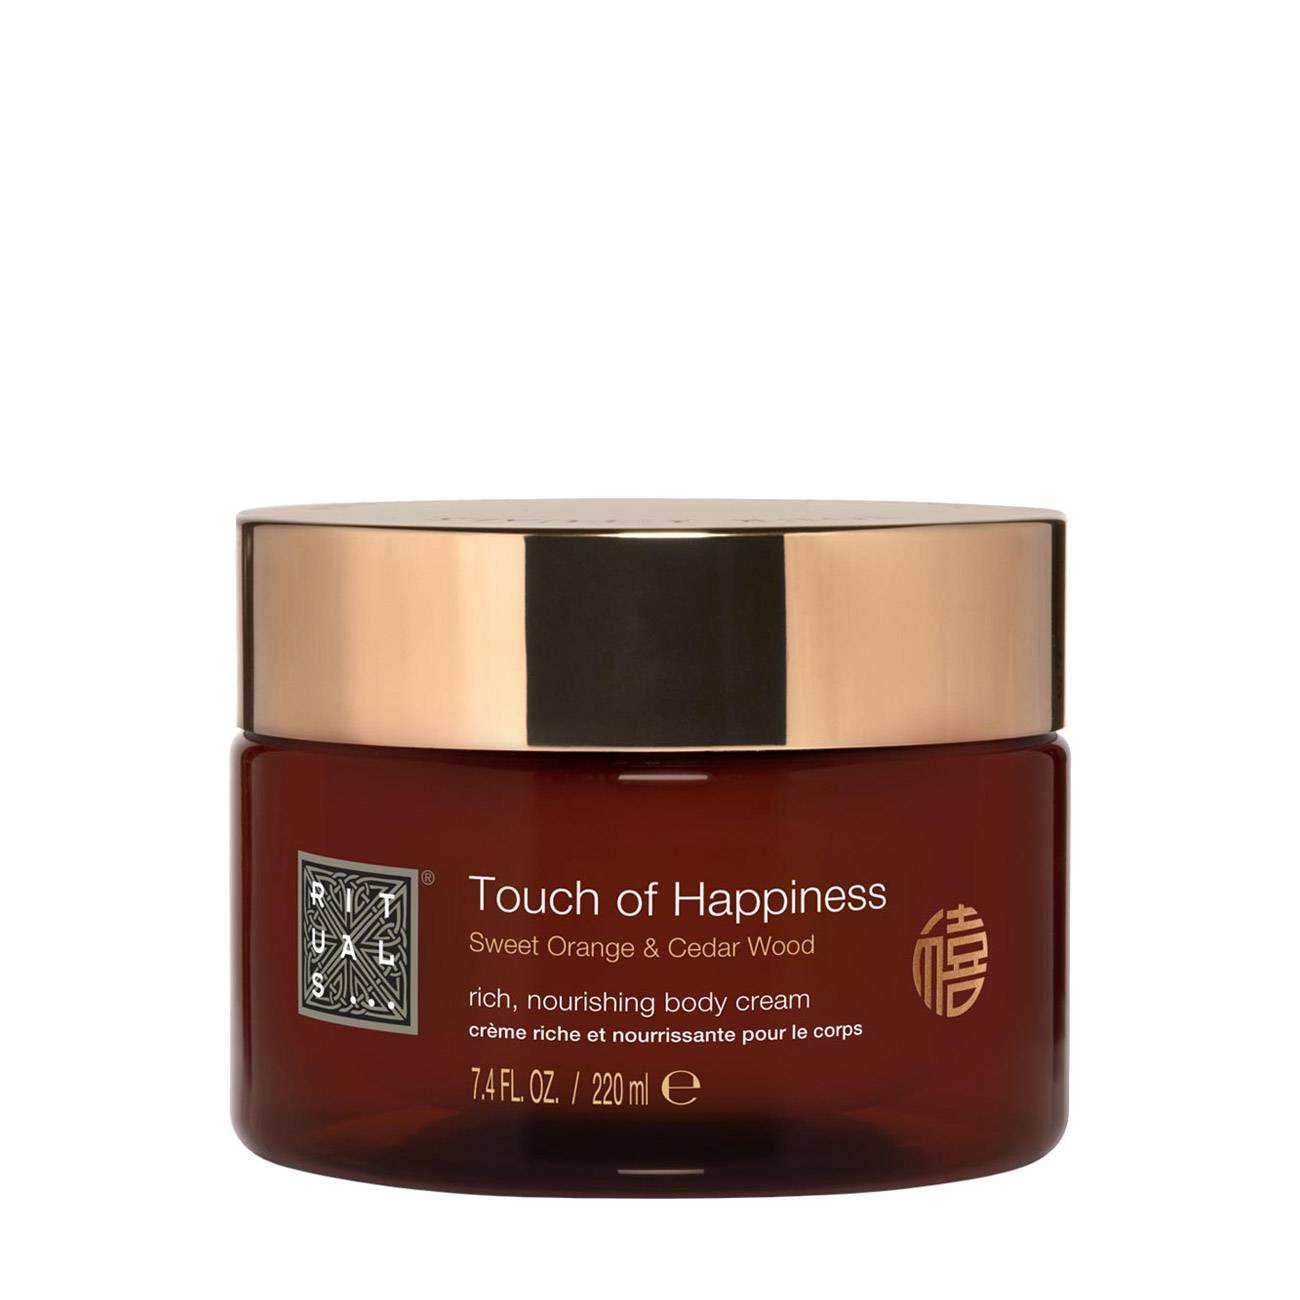 TOUCH OF HAPPINESS 220 Ml poza noua